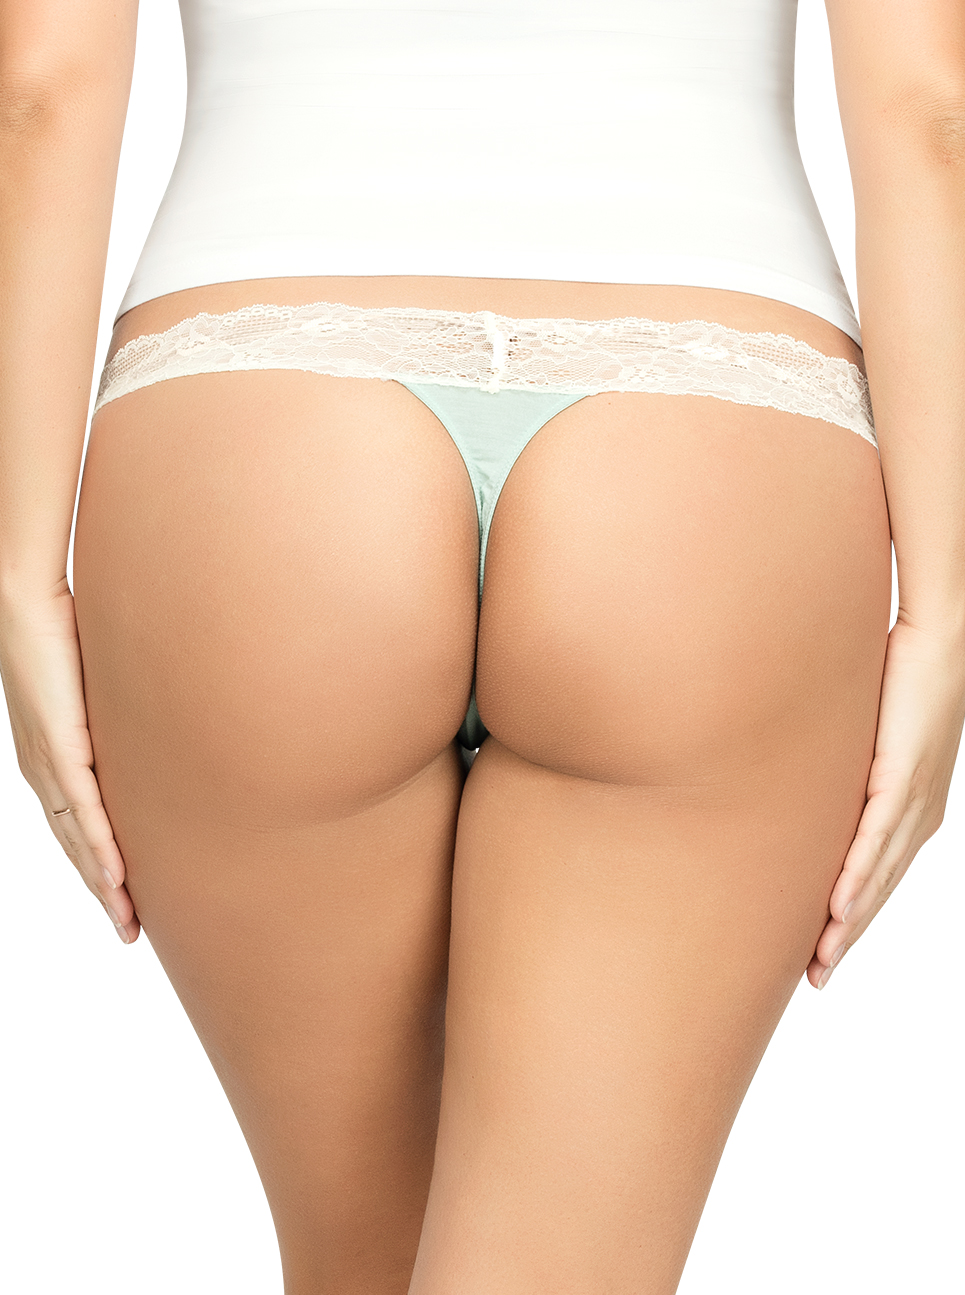 ParfaitPanty SoEssential ThongPP403 Surf Back - Parfait Panty So Essential Thong - Surf - PP403